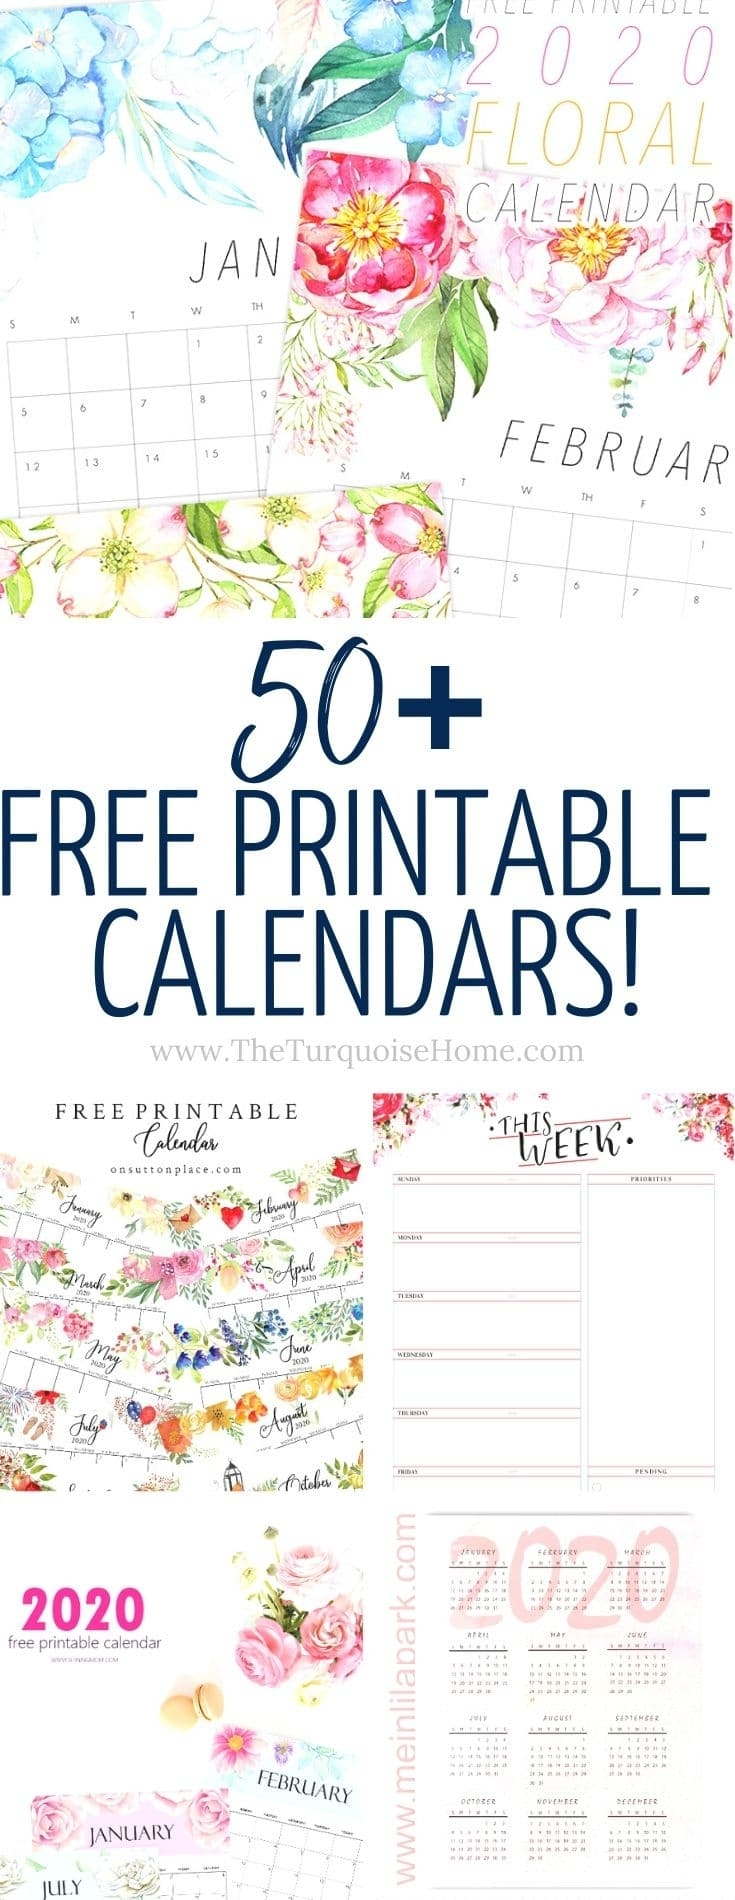 50+ Free Printable Calendars For 2020 | The Turquoise Home